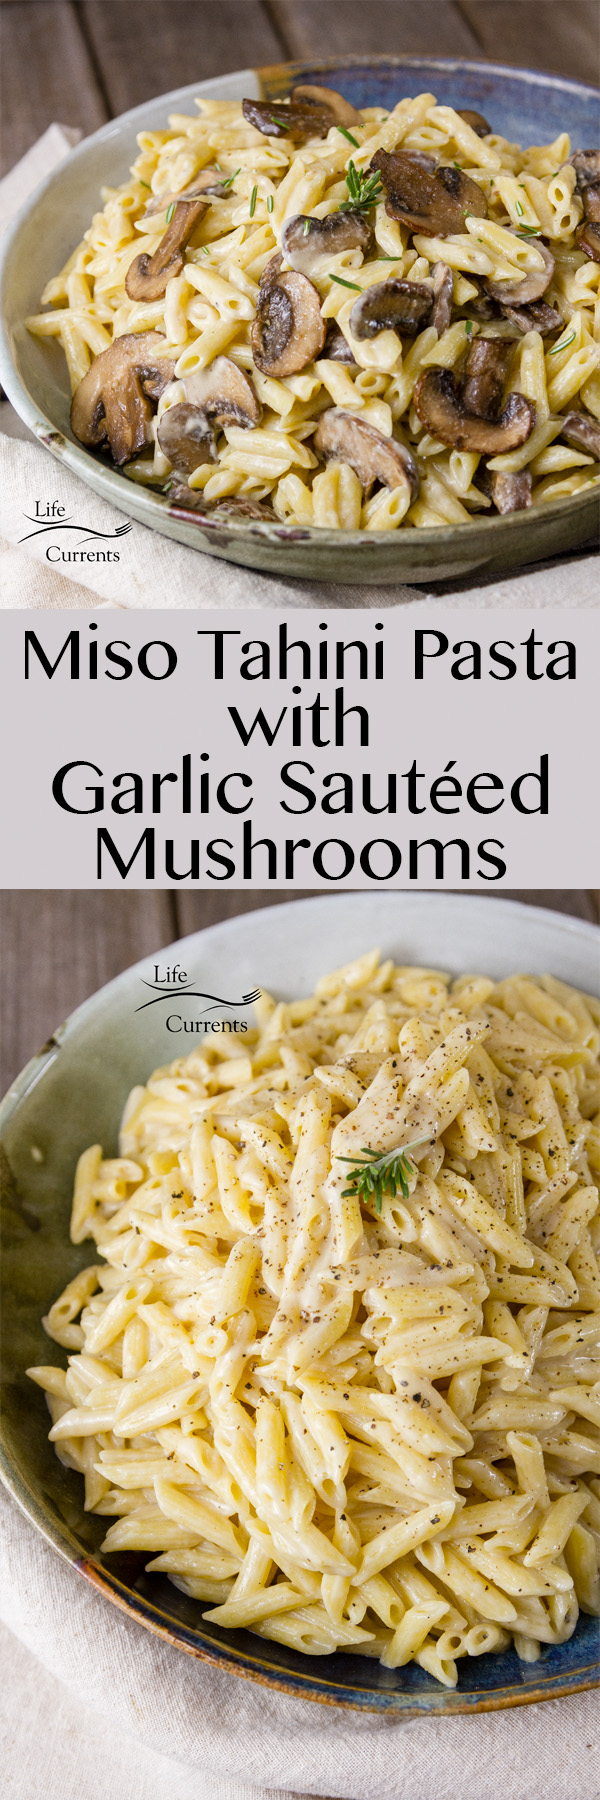 Miso Tahini Pasta with Garlic Sautéed Mushrooms is a rich creamy vegan sauce on top of hearty pasta with earthy garlicky mushrooms is the perfect easy to make weeknight dinner.